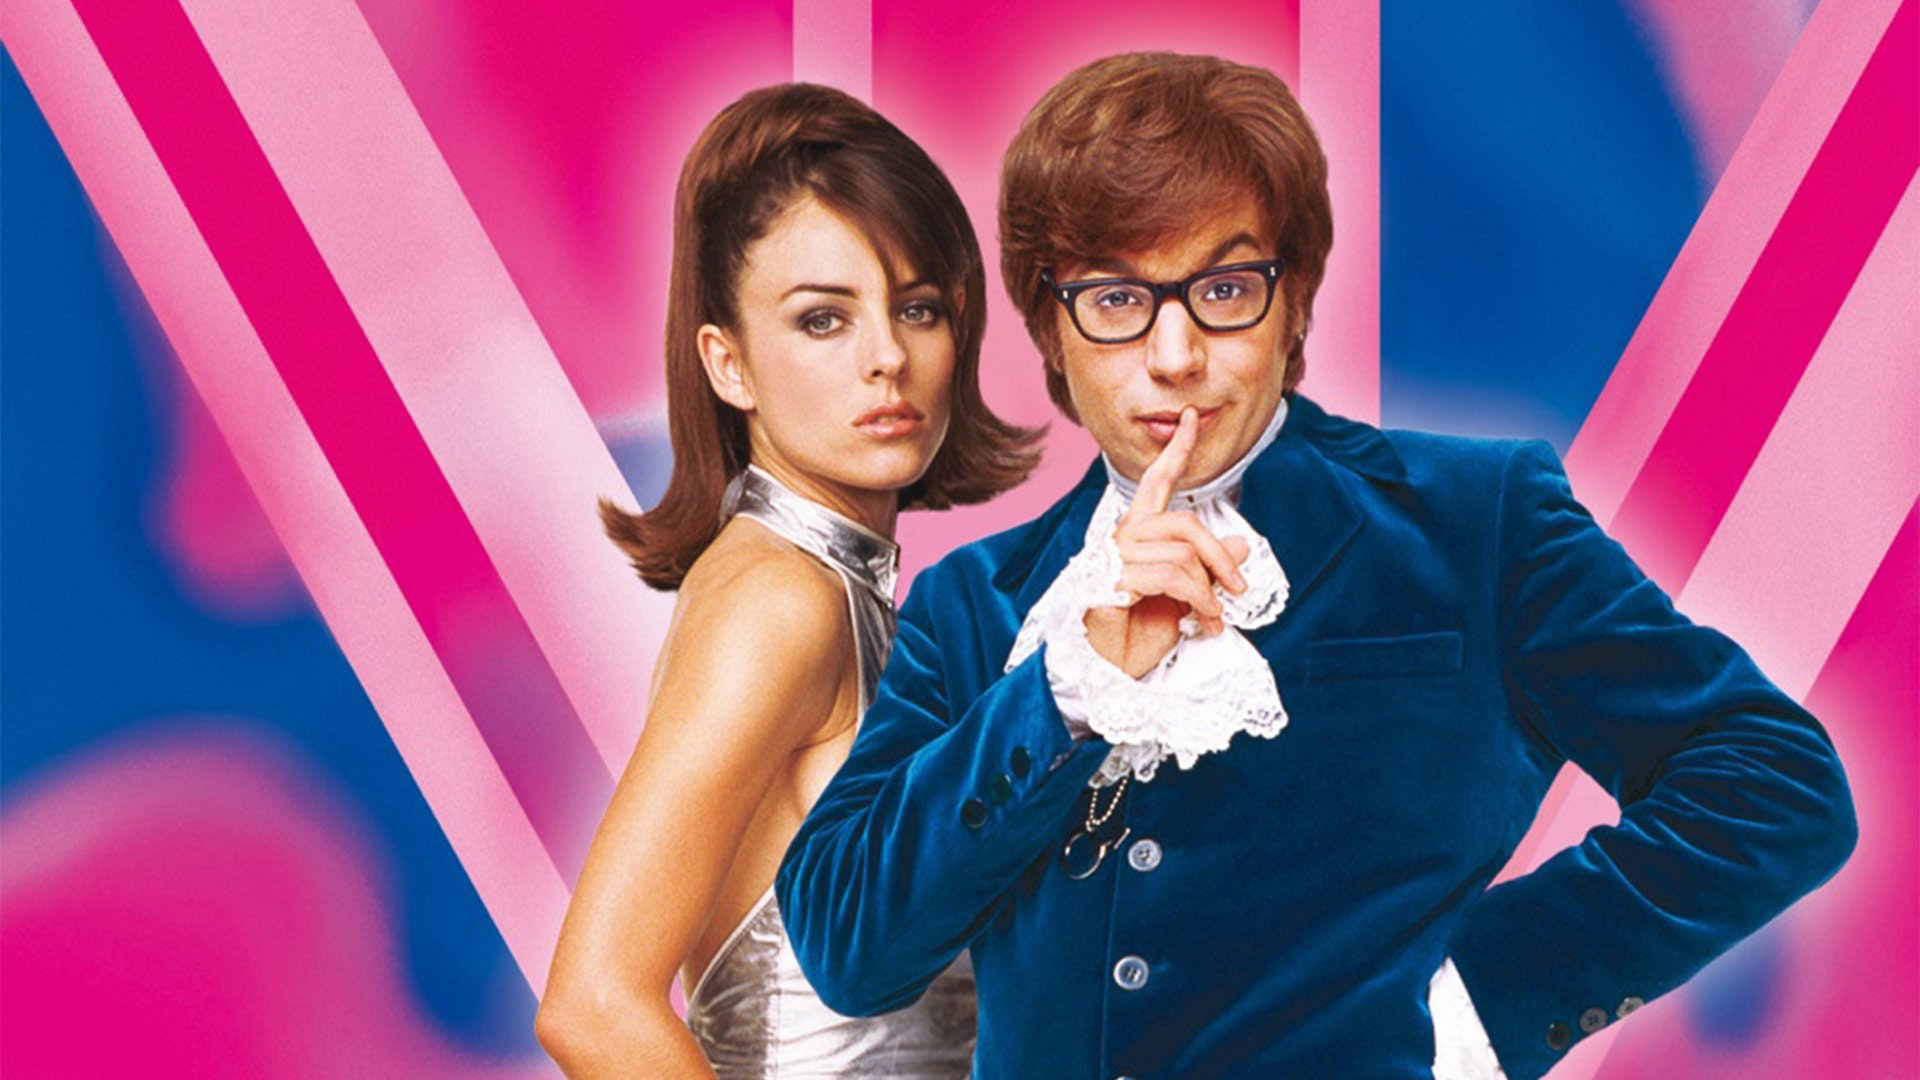 austin powers international� soundtrack music complete